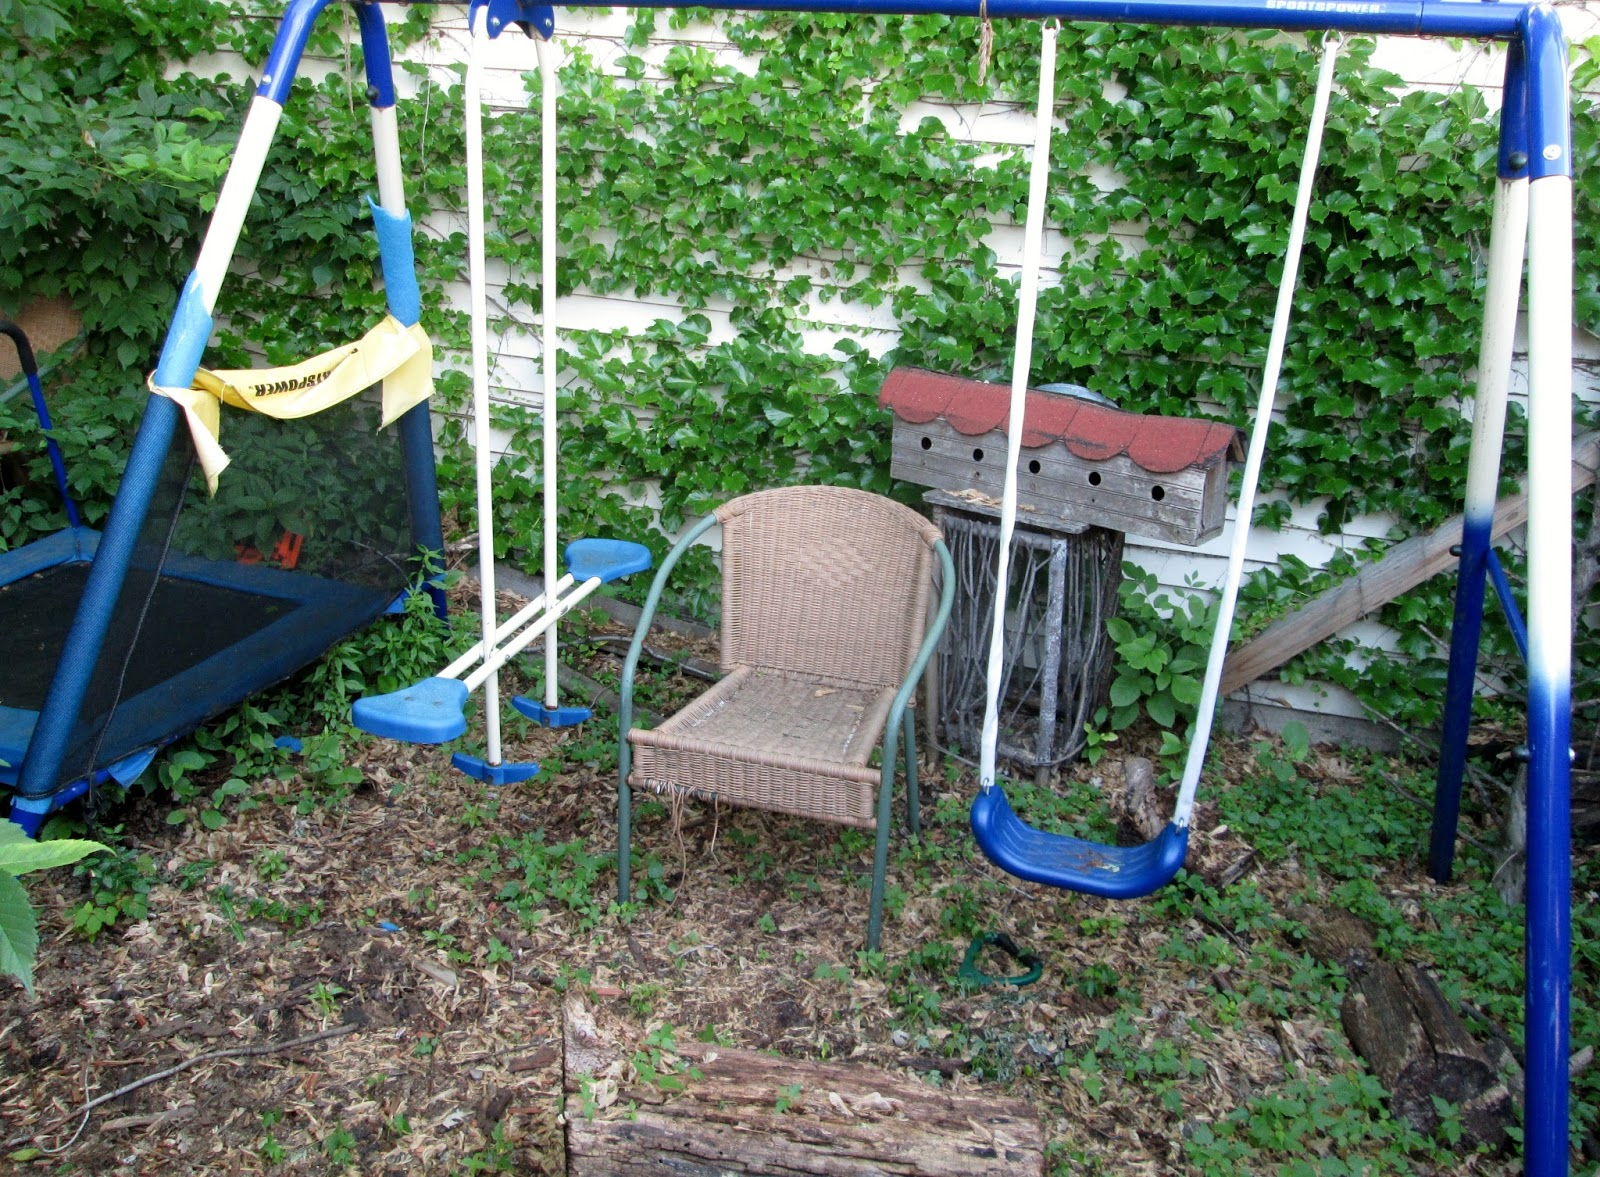 Small World Land Turn Your Old Swing Set Into A Play Fort